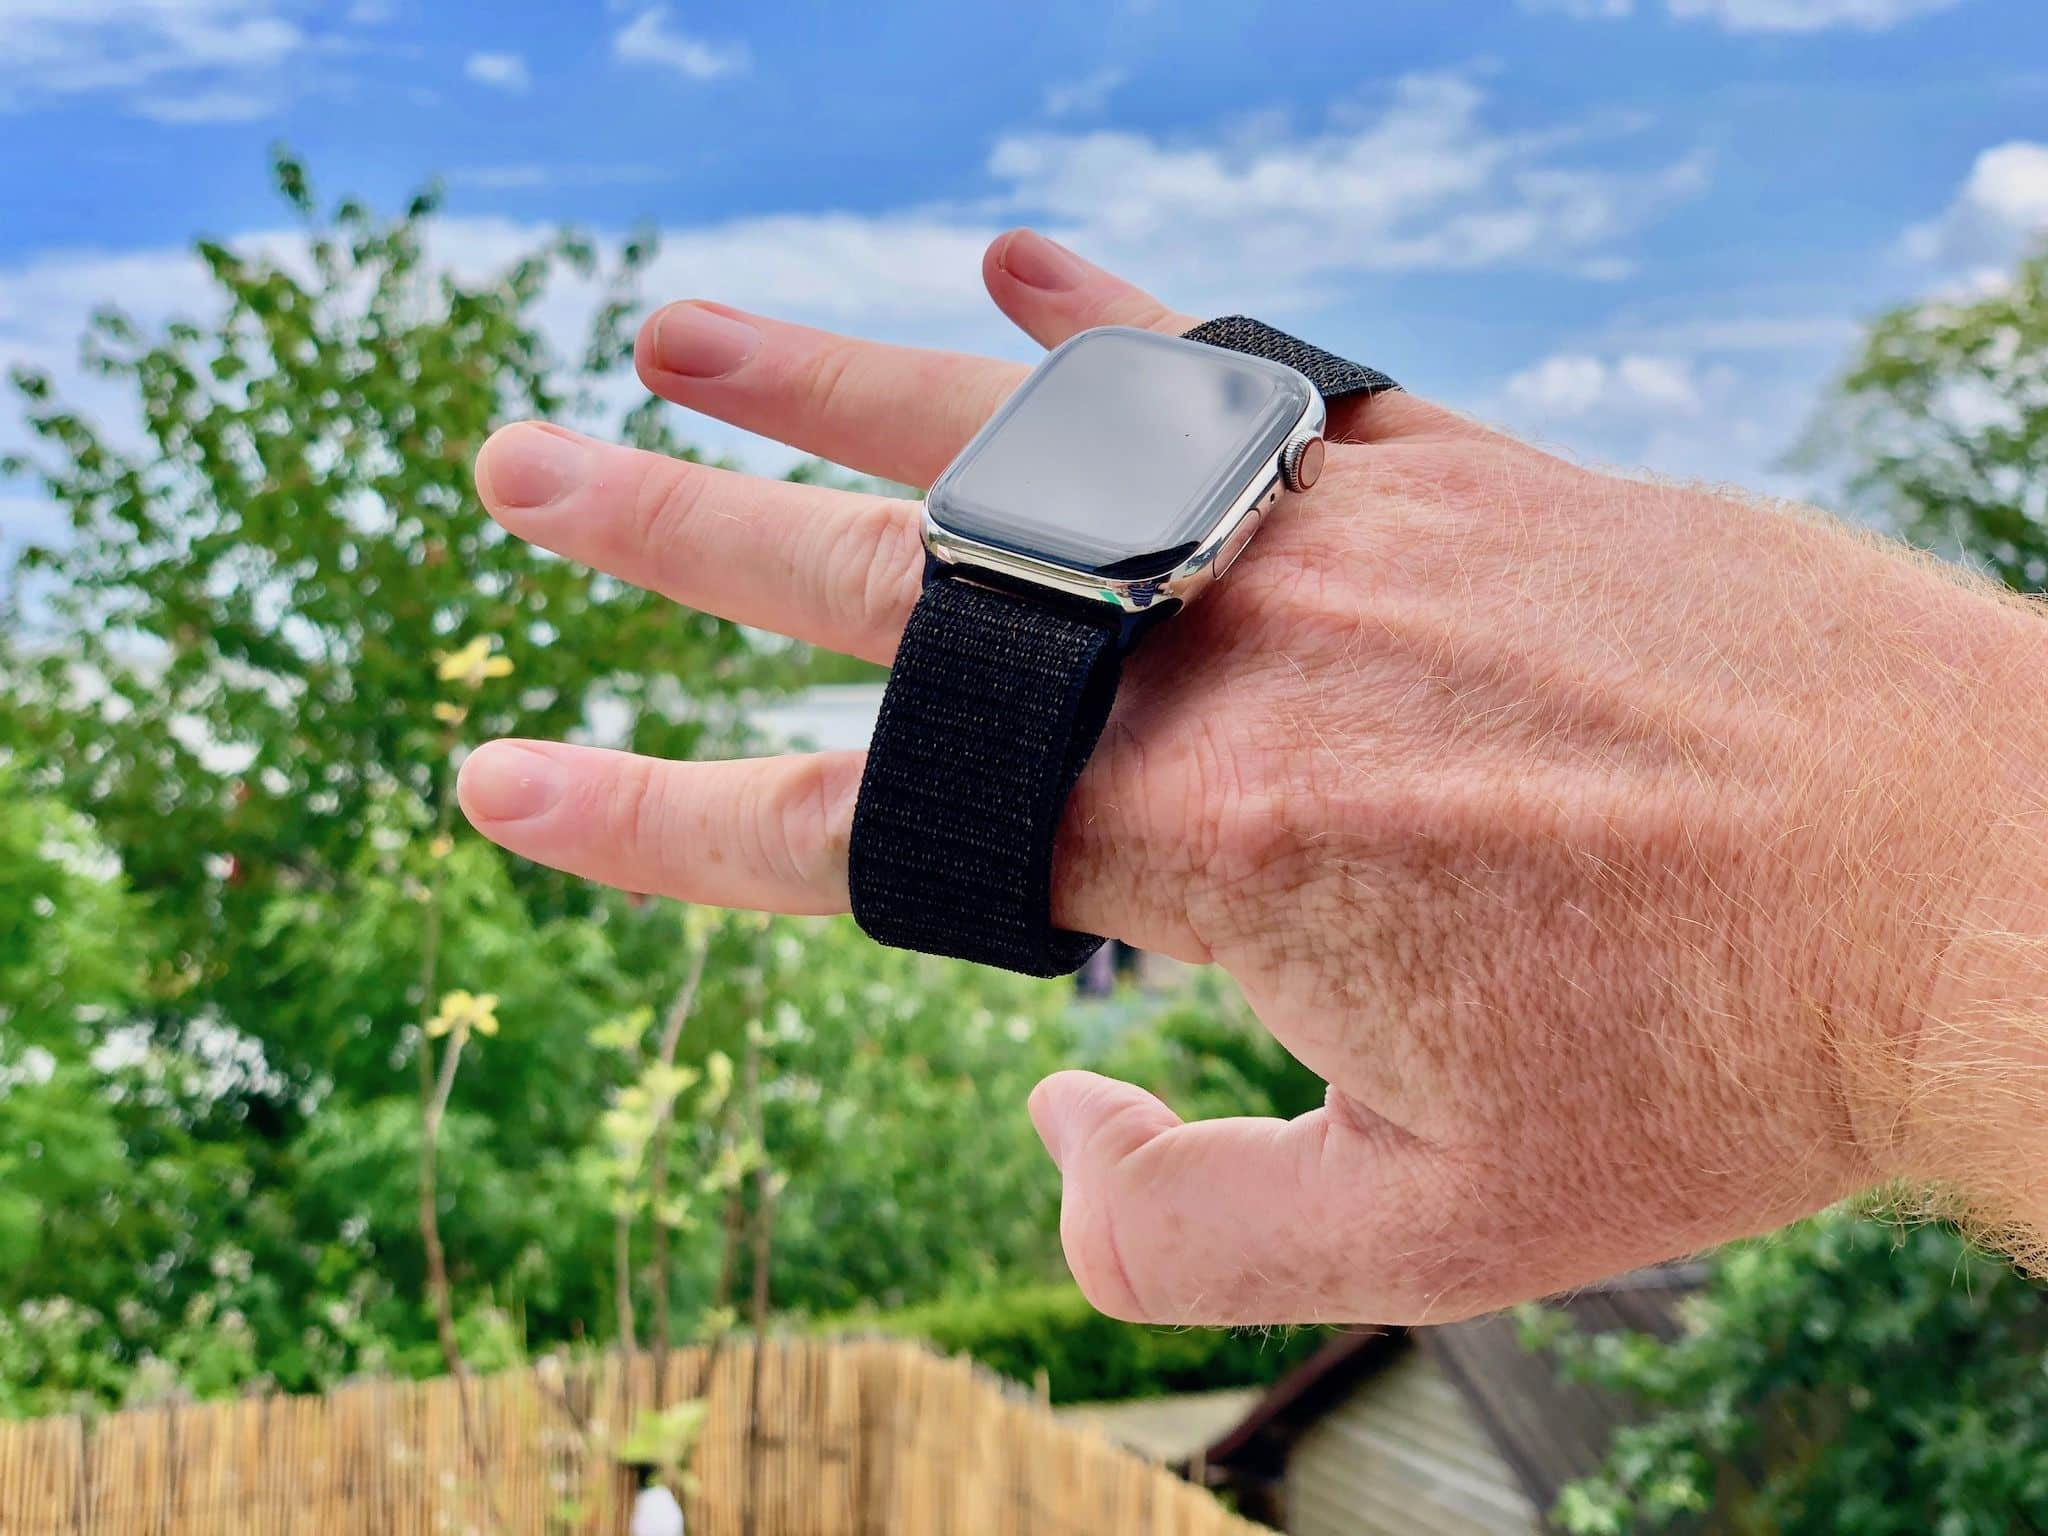 Apple Watch Sport Loop Test Apple Watch Sportarmband im Test: welche Modelle überzeugen? Foto: Sascha Tegtmeyer